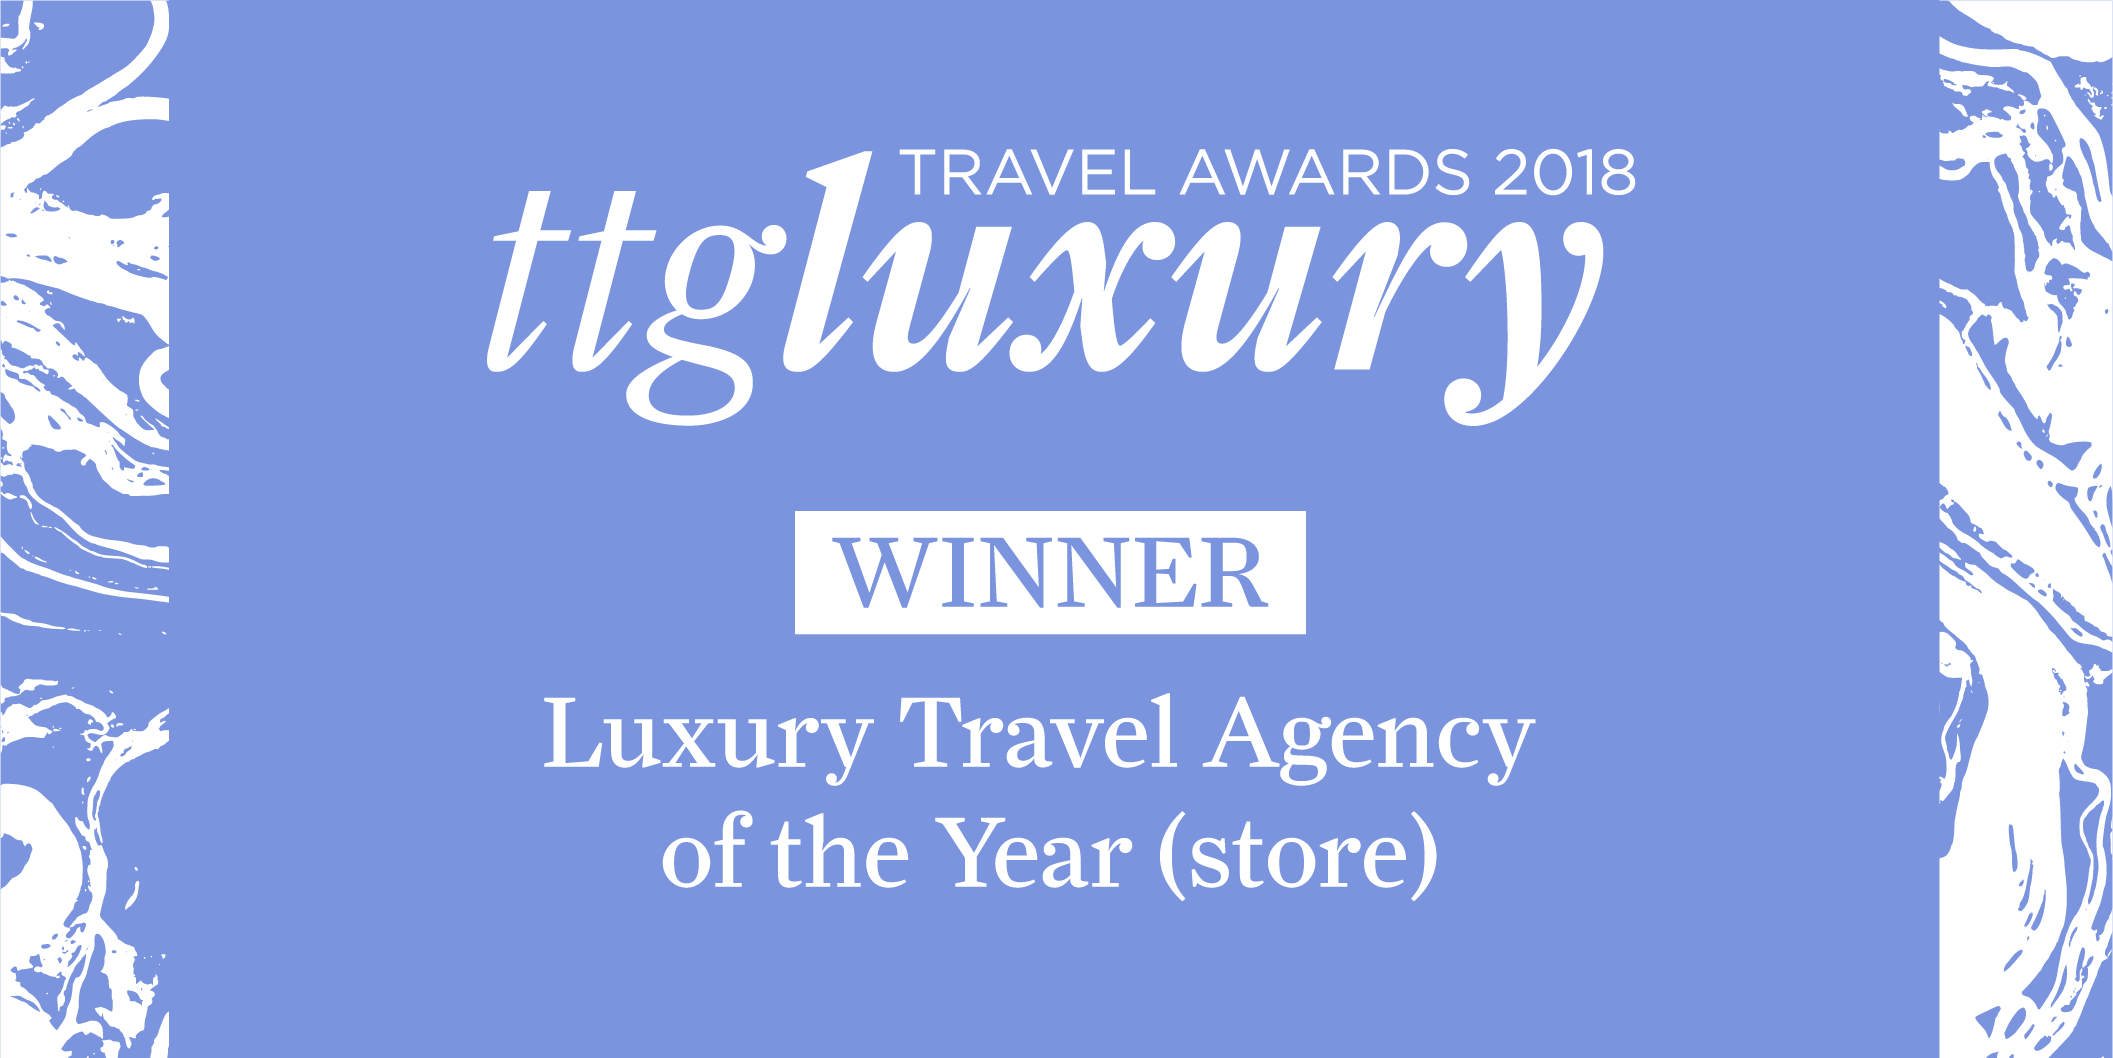 Luxury Travel Agency of the Year (store) TTGLA18 - WINNER-01